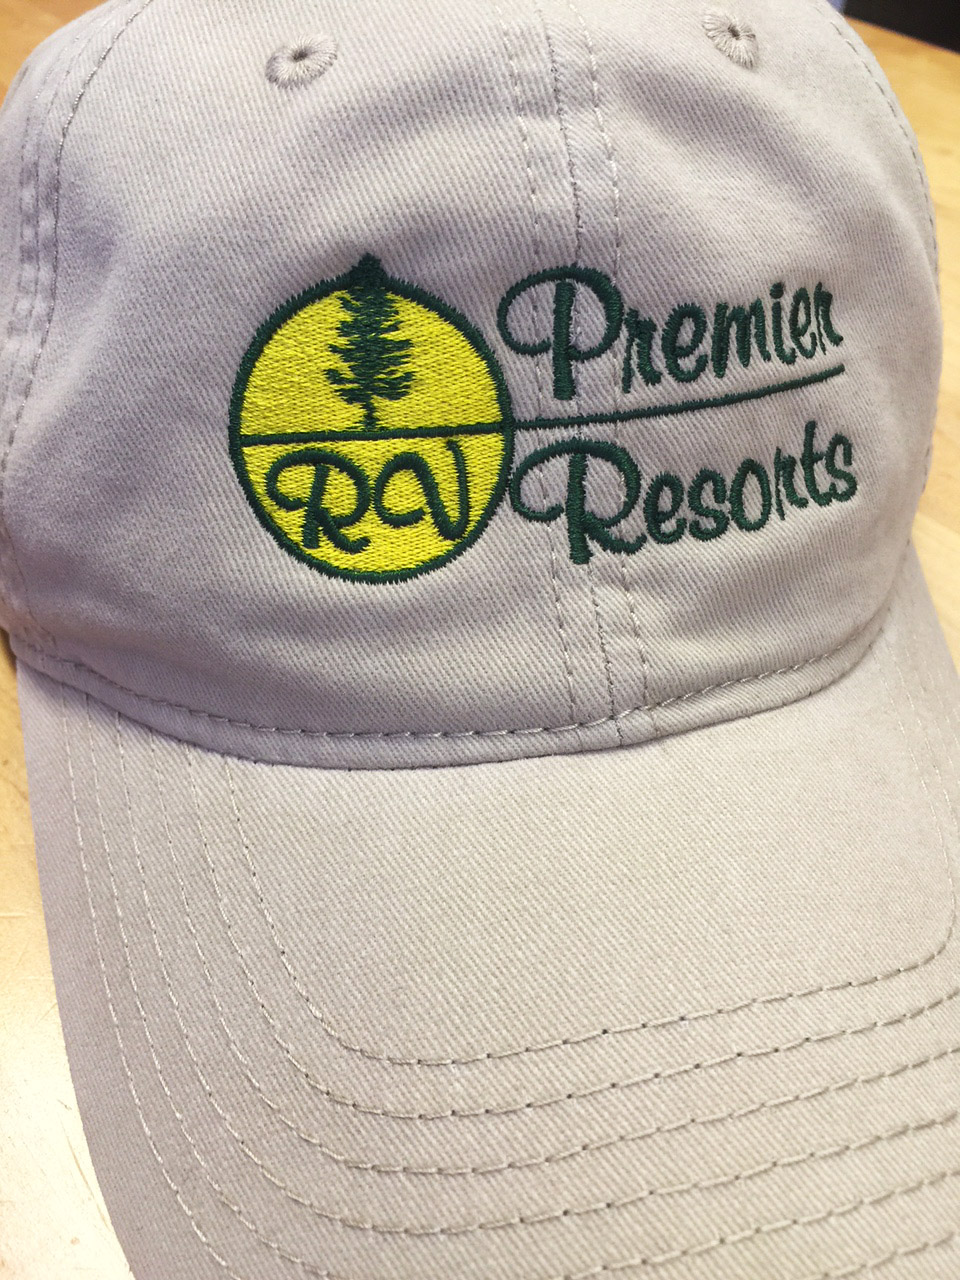 Premier RV Embroidery